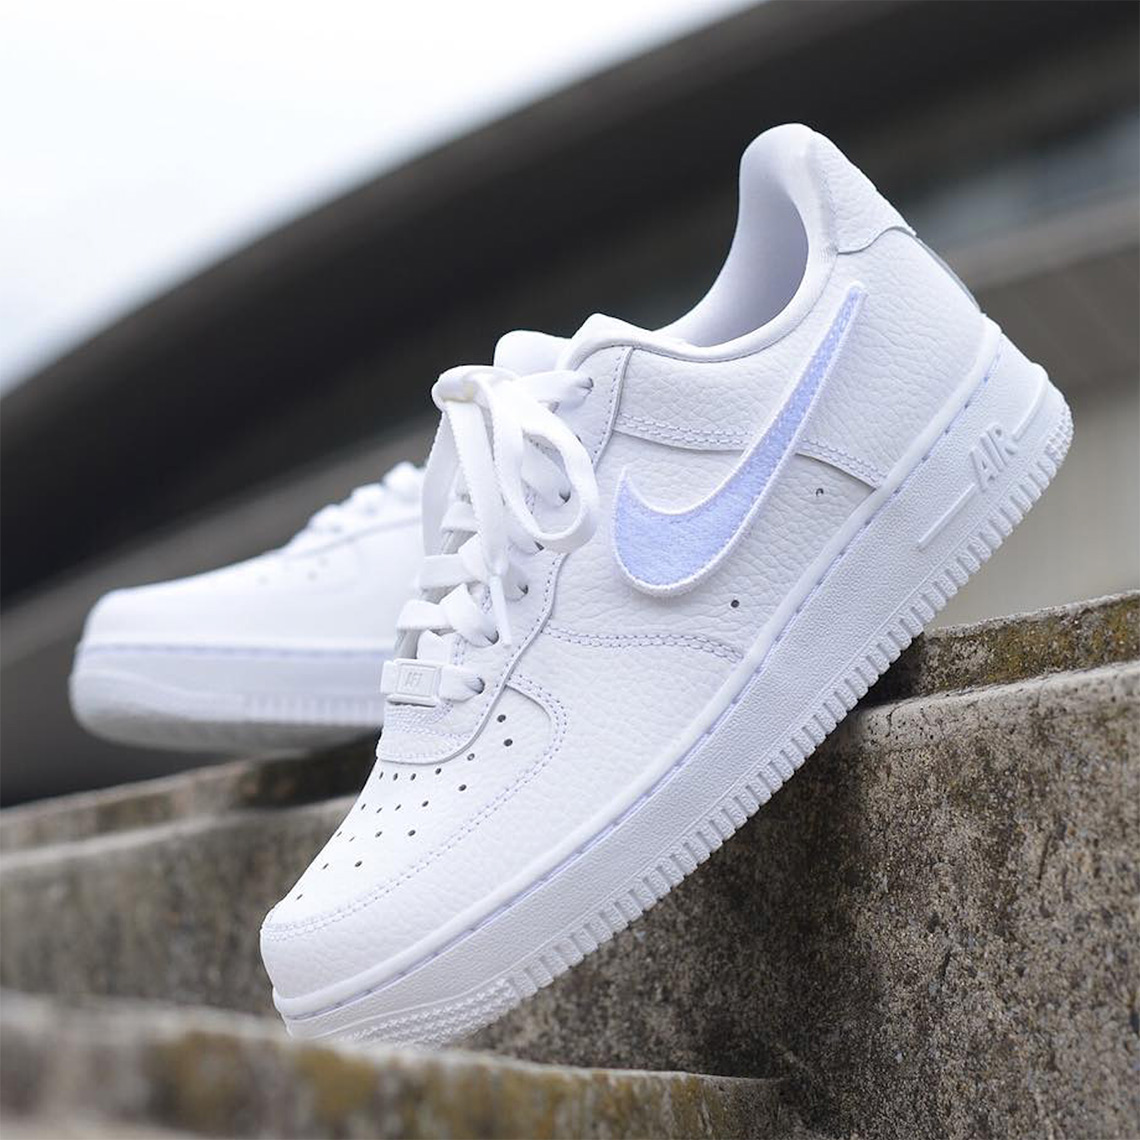 4a70ed59877 Nike Air Force 1-100. Japan Release Date  May 12th